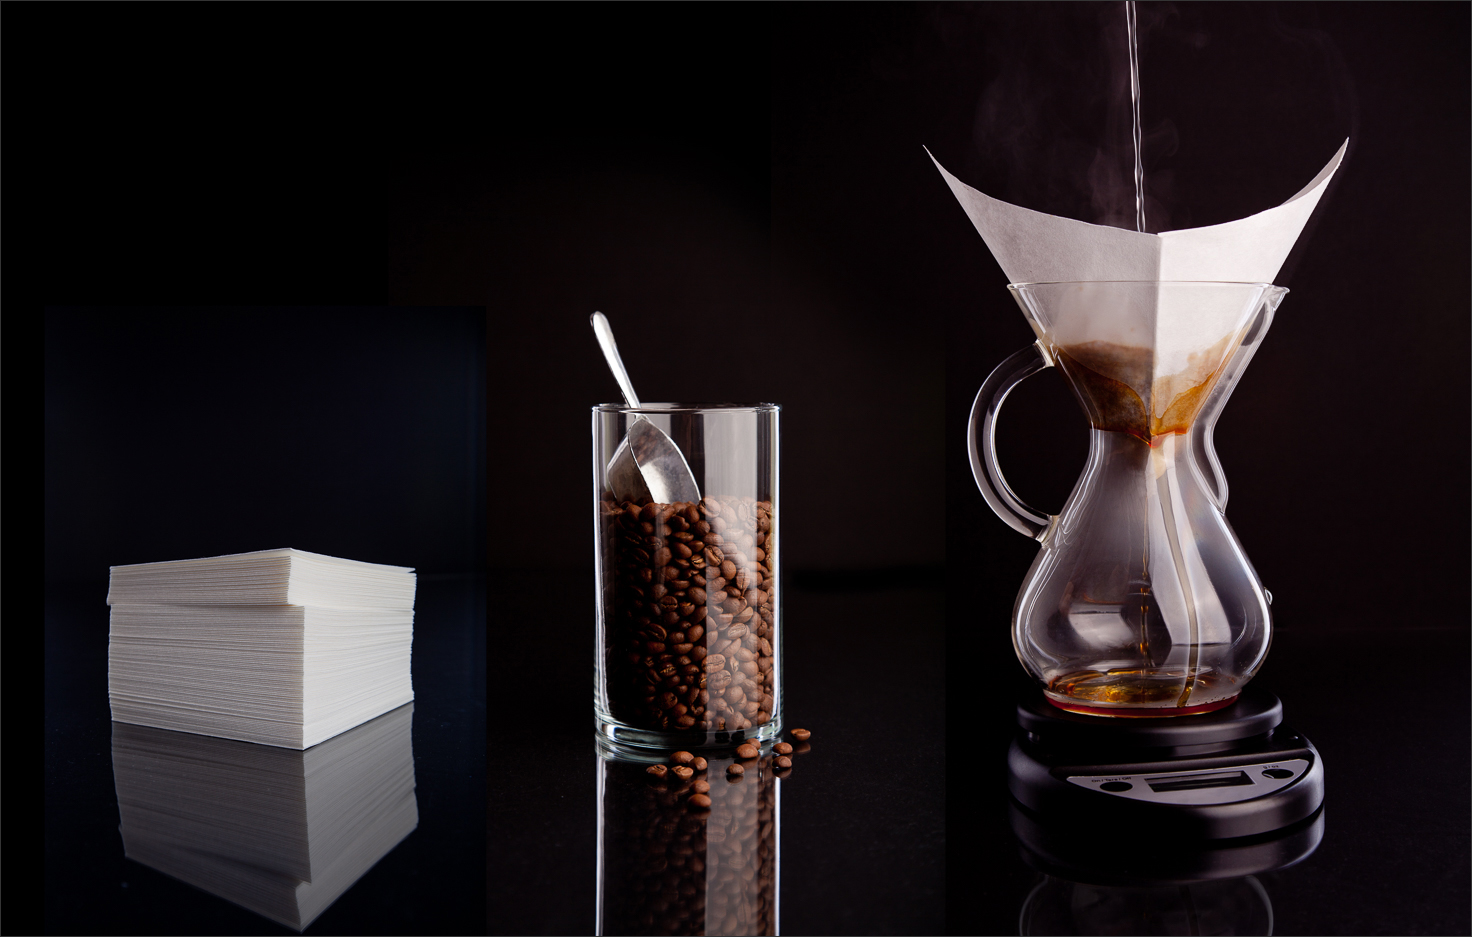 Brewing Coffee with Chemex